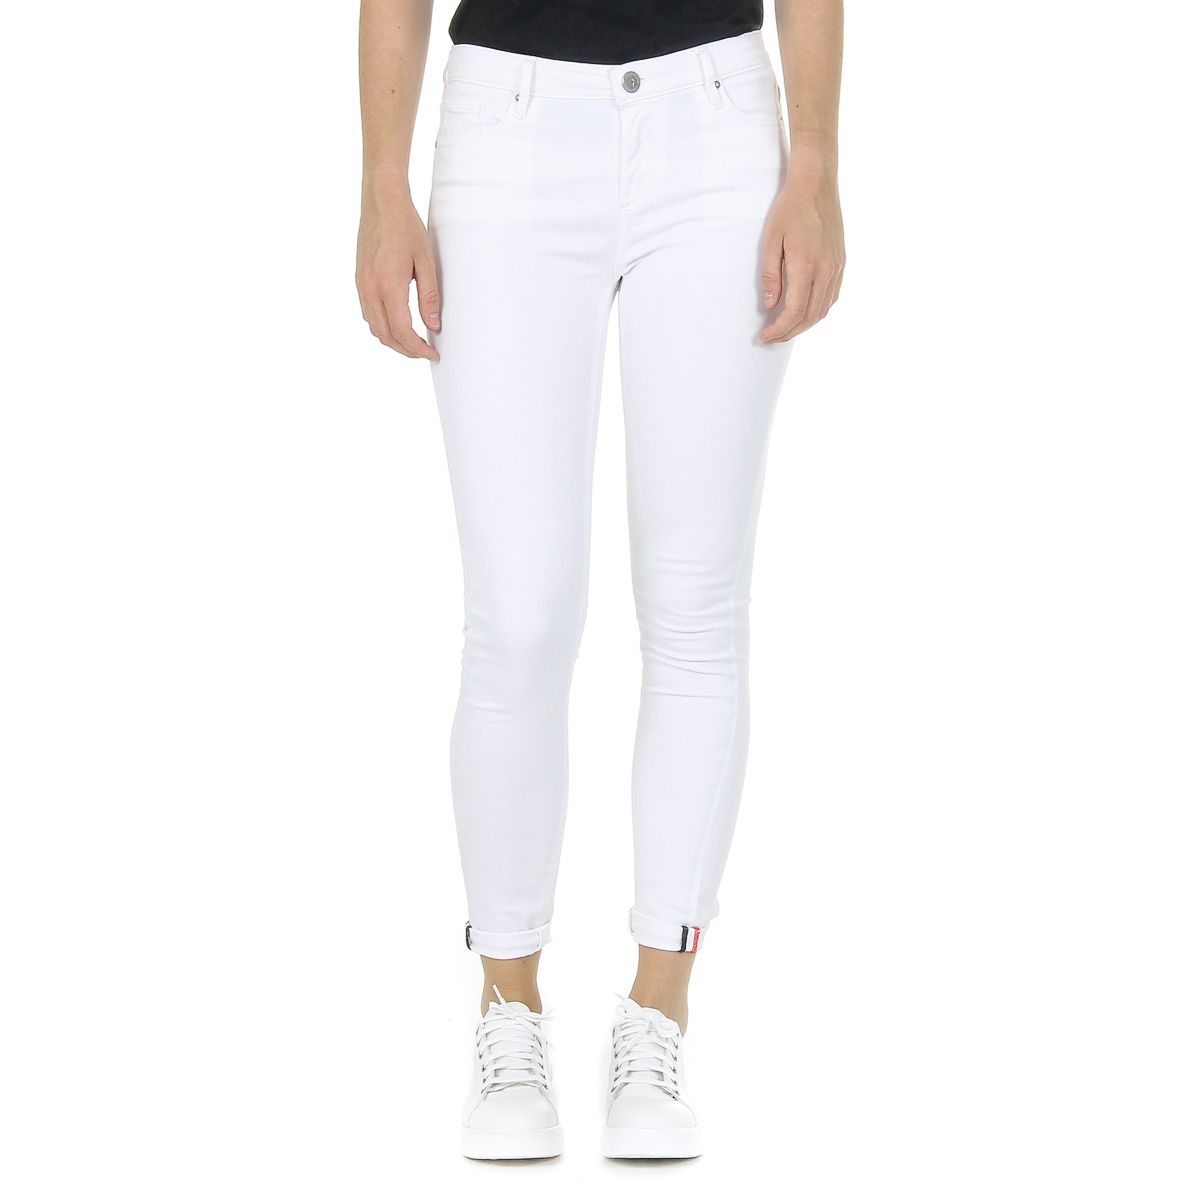 Primary image for Andrew Charles Womens Trousers White CLAIRE